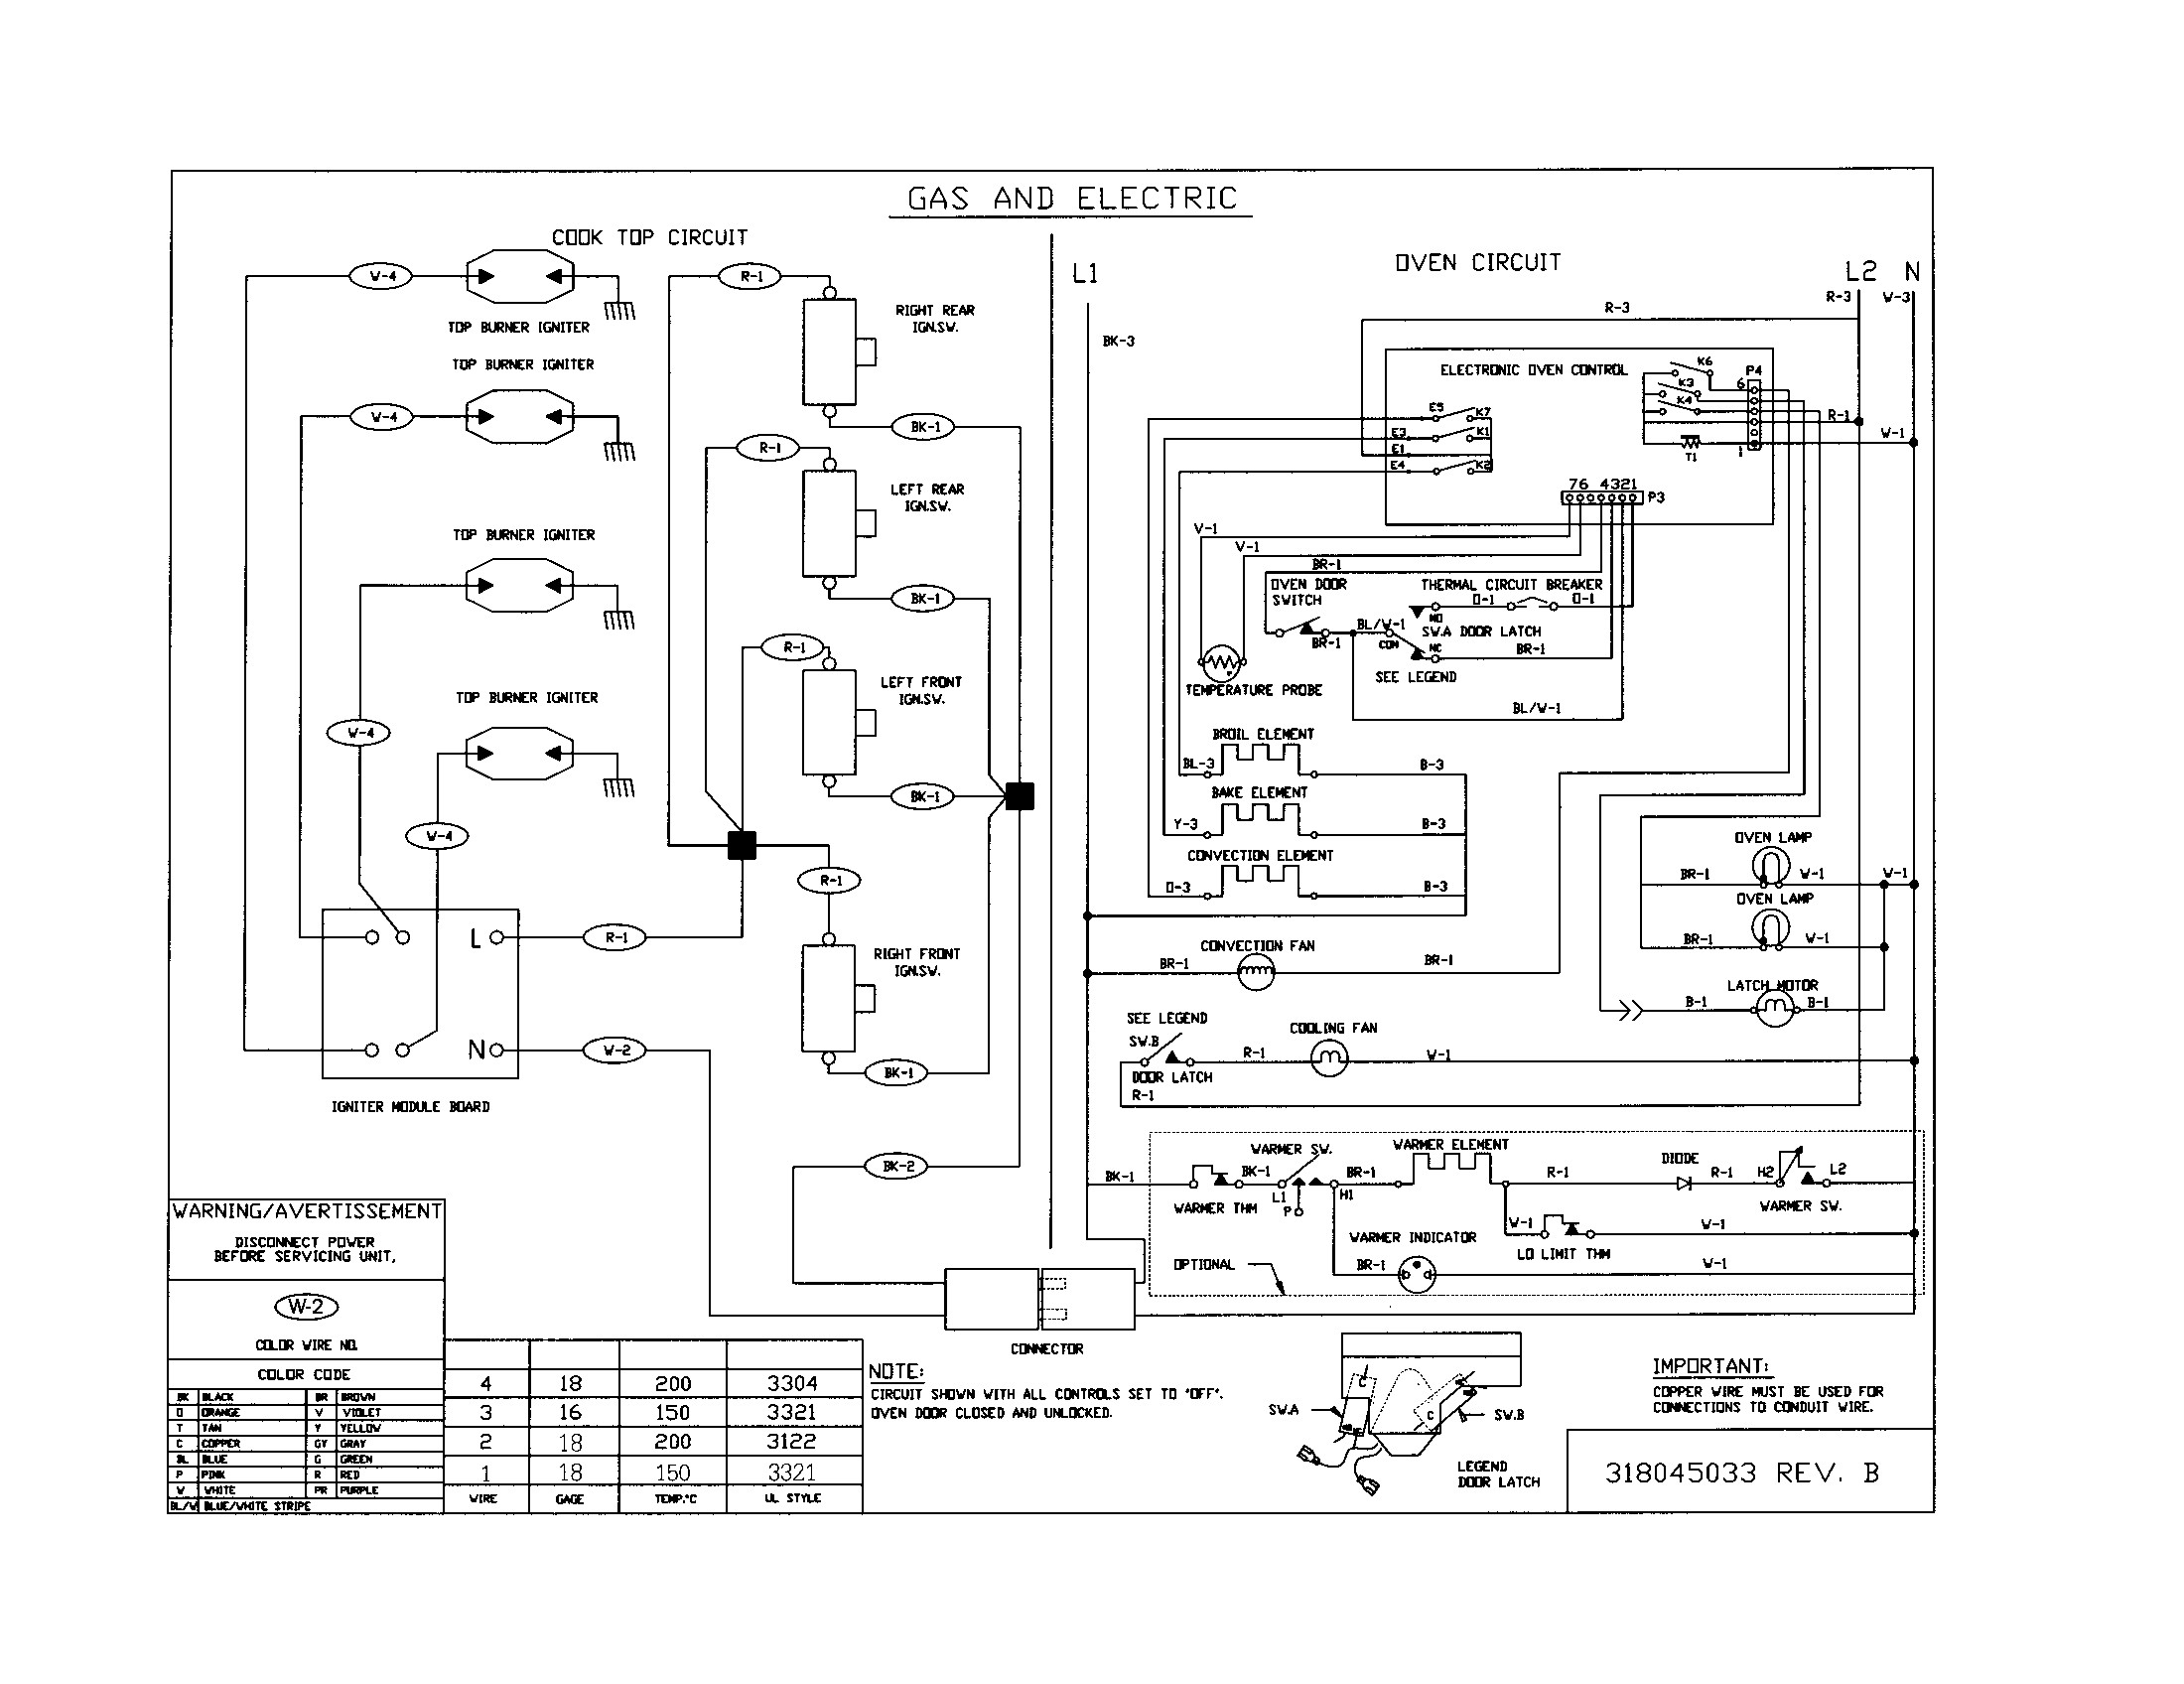 continental chiller wiring diagram wiring schematic diagramcontinental chiller wiring diagram auto electrical wiring diagram mitsubishi city multi wiring diagram related with continental